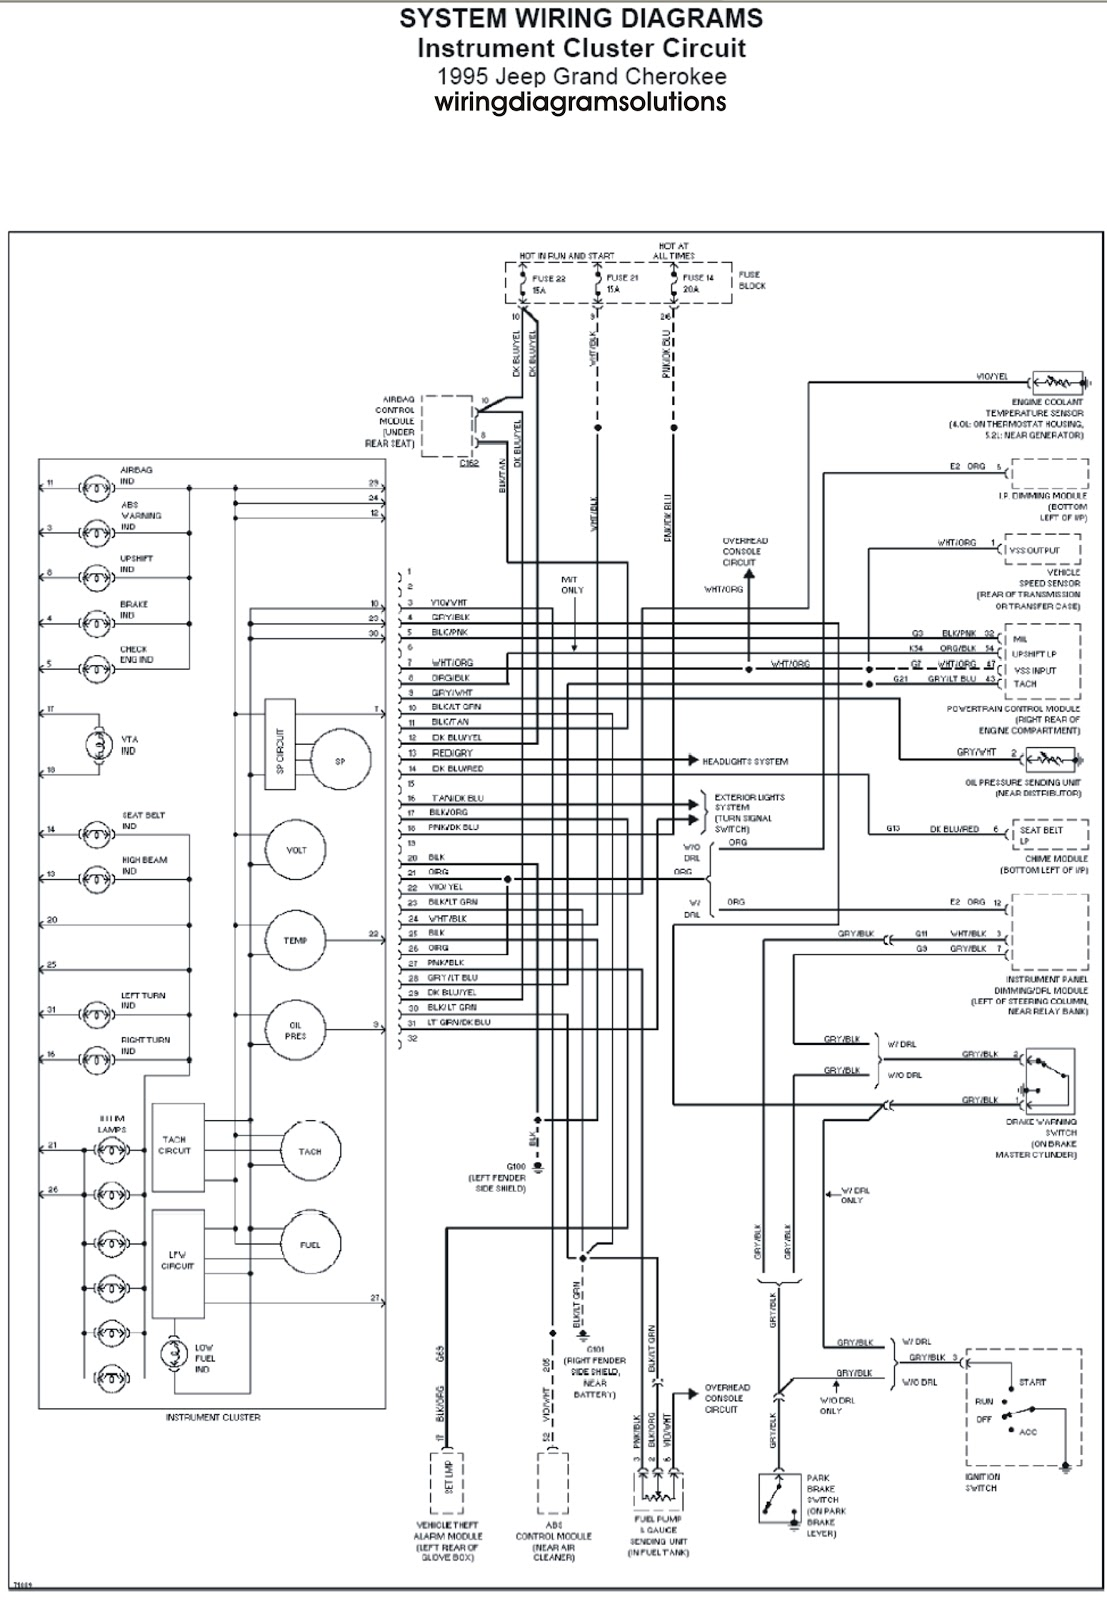 Electrical Switch Schematic Wiring Library Power Circuit Diagram 1998 Jeep 4 0 Simple Rh David Huggett Co Uk 120v